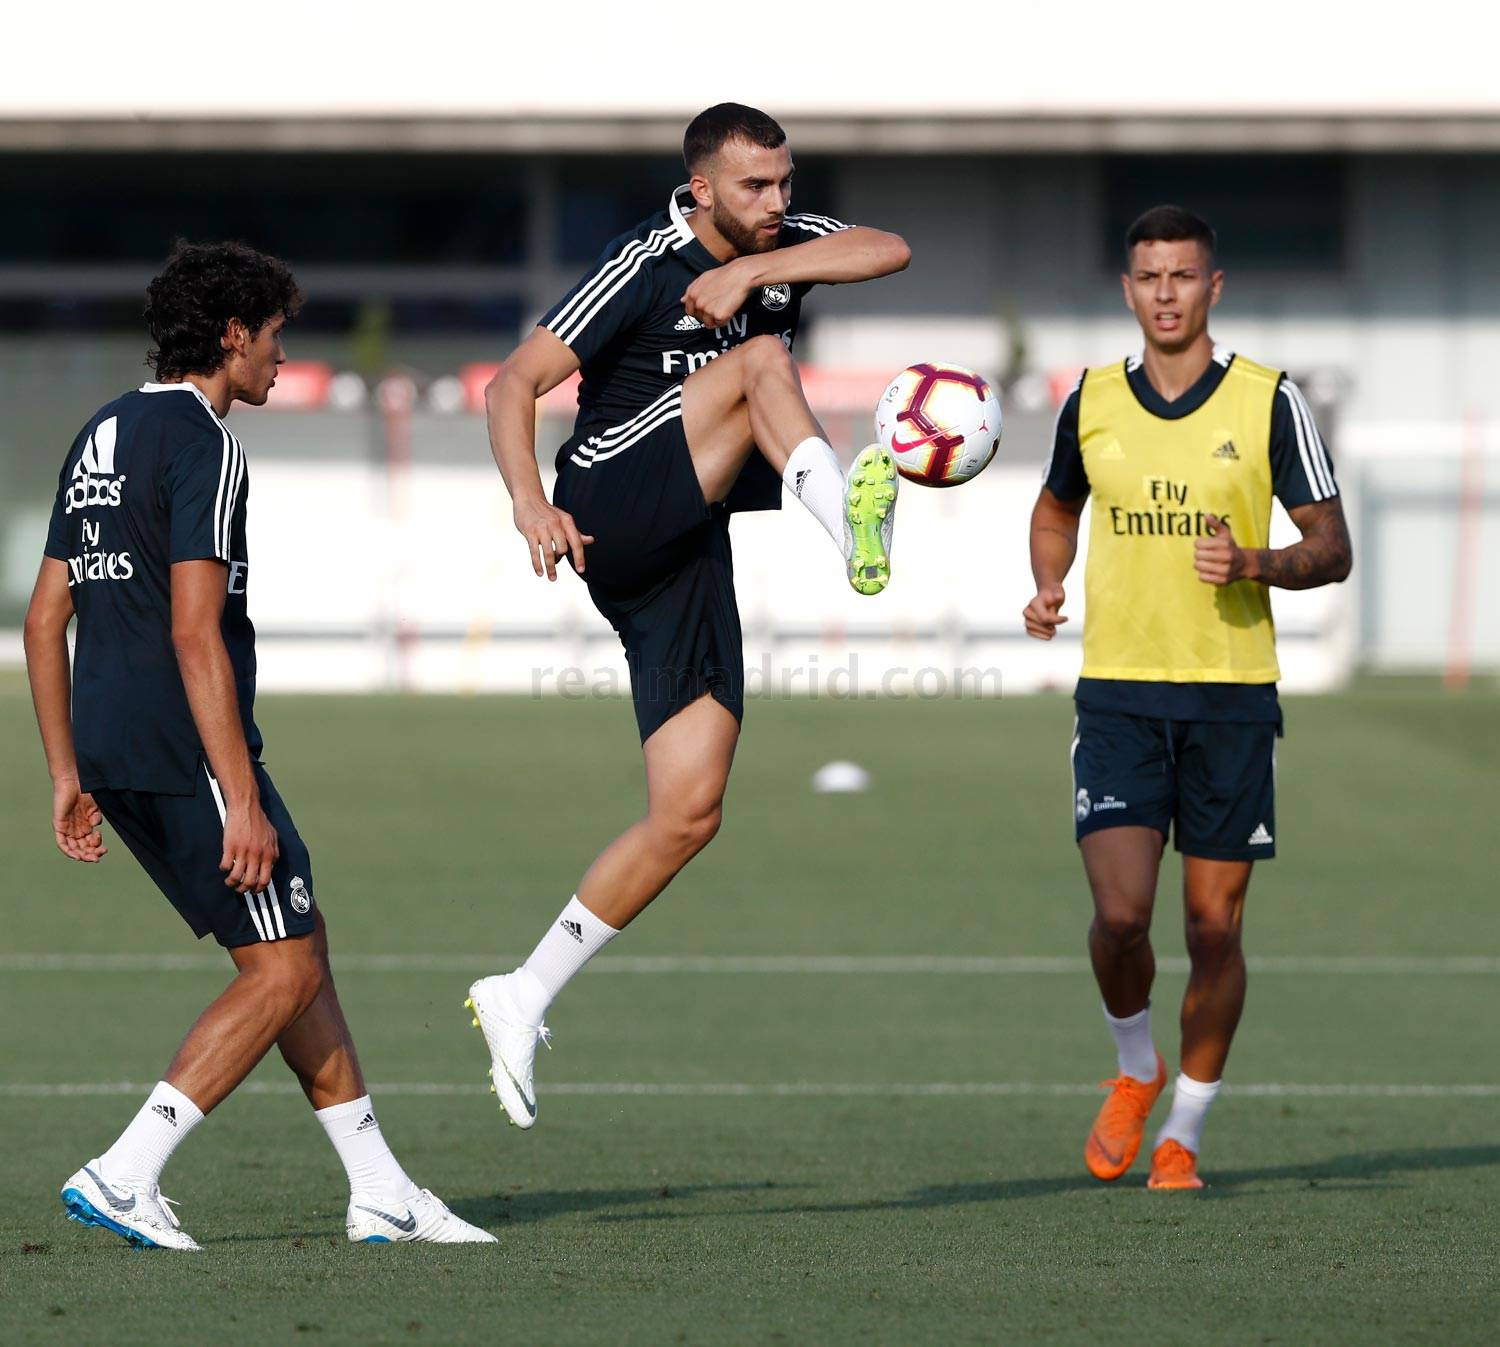 Real Madrid - Entrenamiento del Real Madrid - 16-07-2018